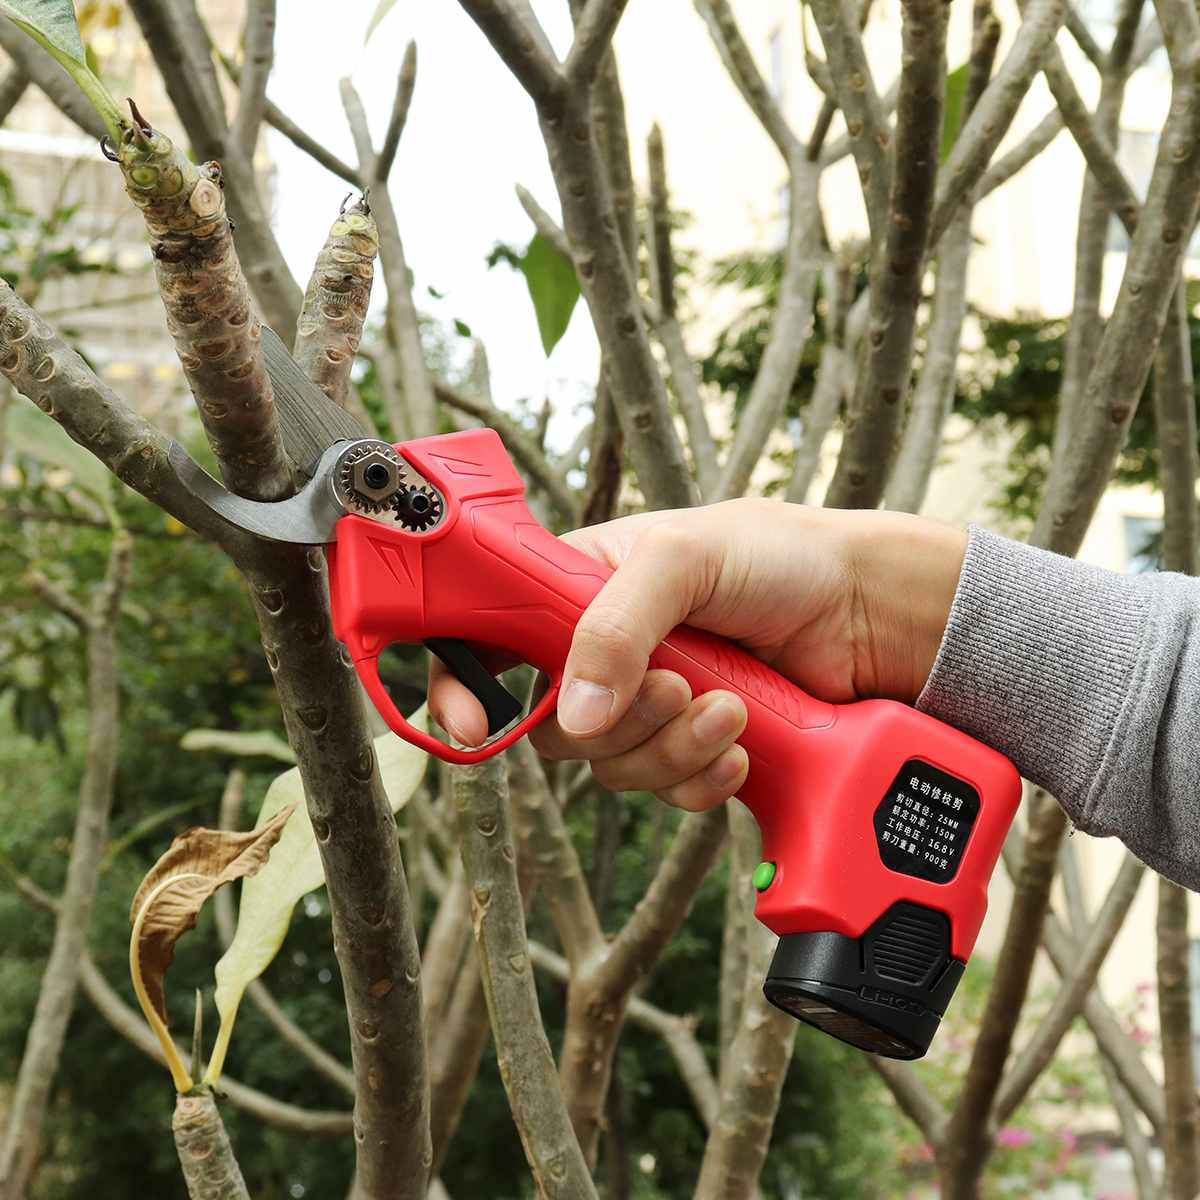 Wireless 16.8V 25mm Electric Garden Scissor for Brach Pruning with Li-ion Battery and USB Charger 13